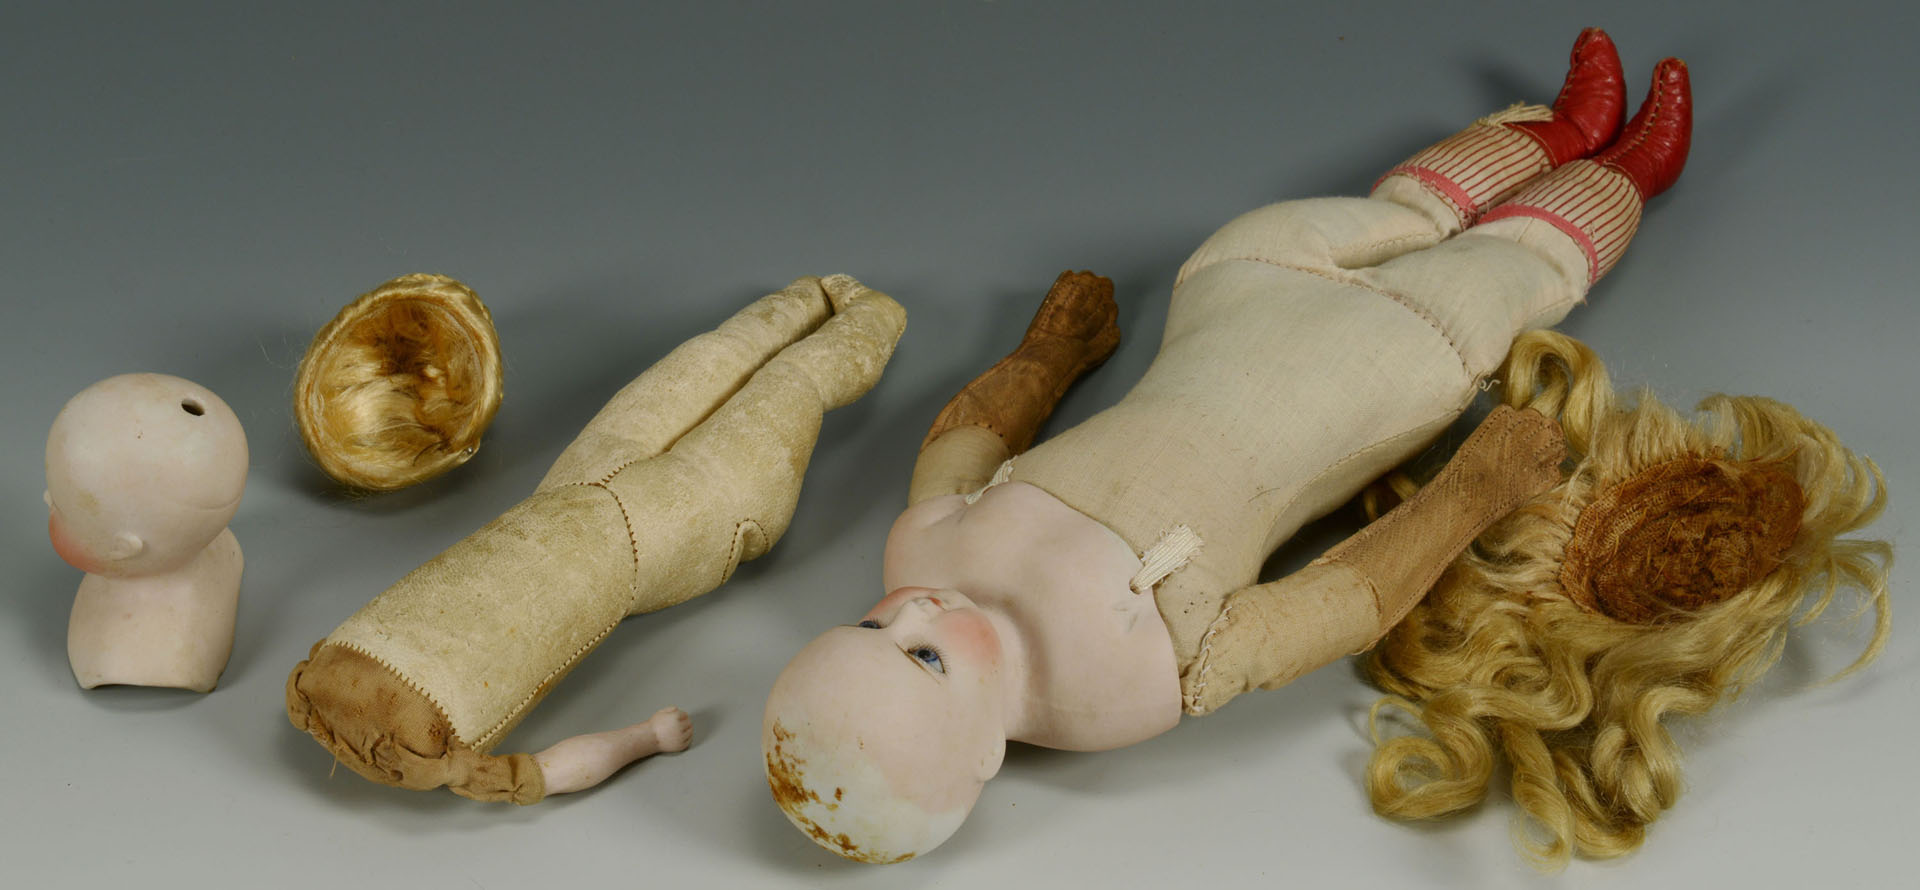 2 Early Bisque Head Fashion dolls and extra clothe